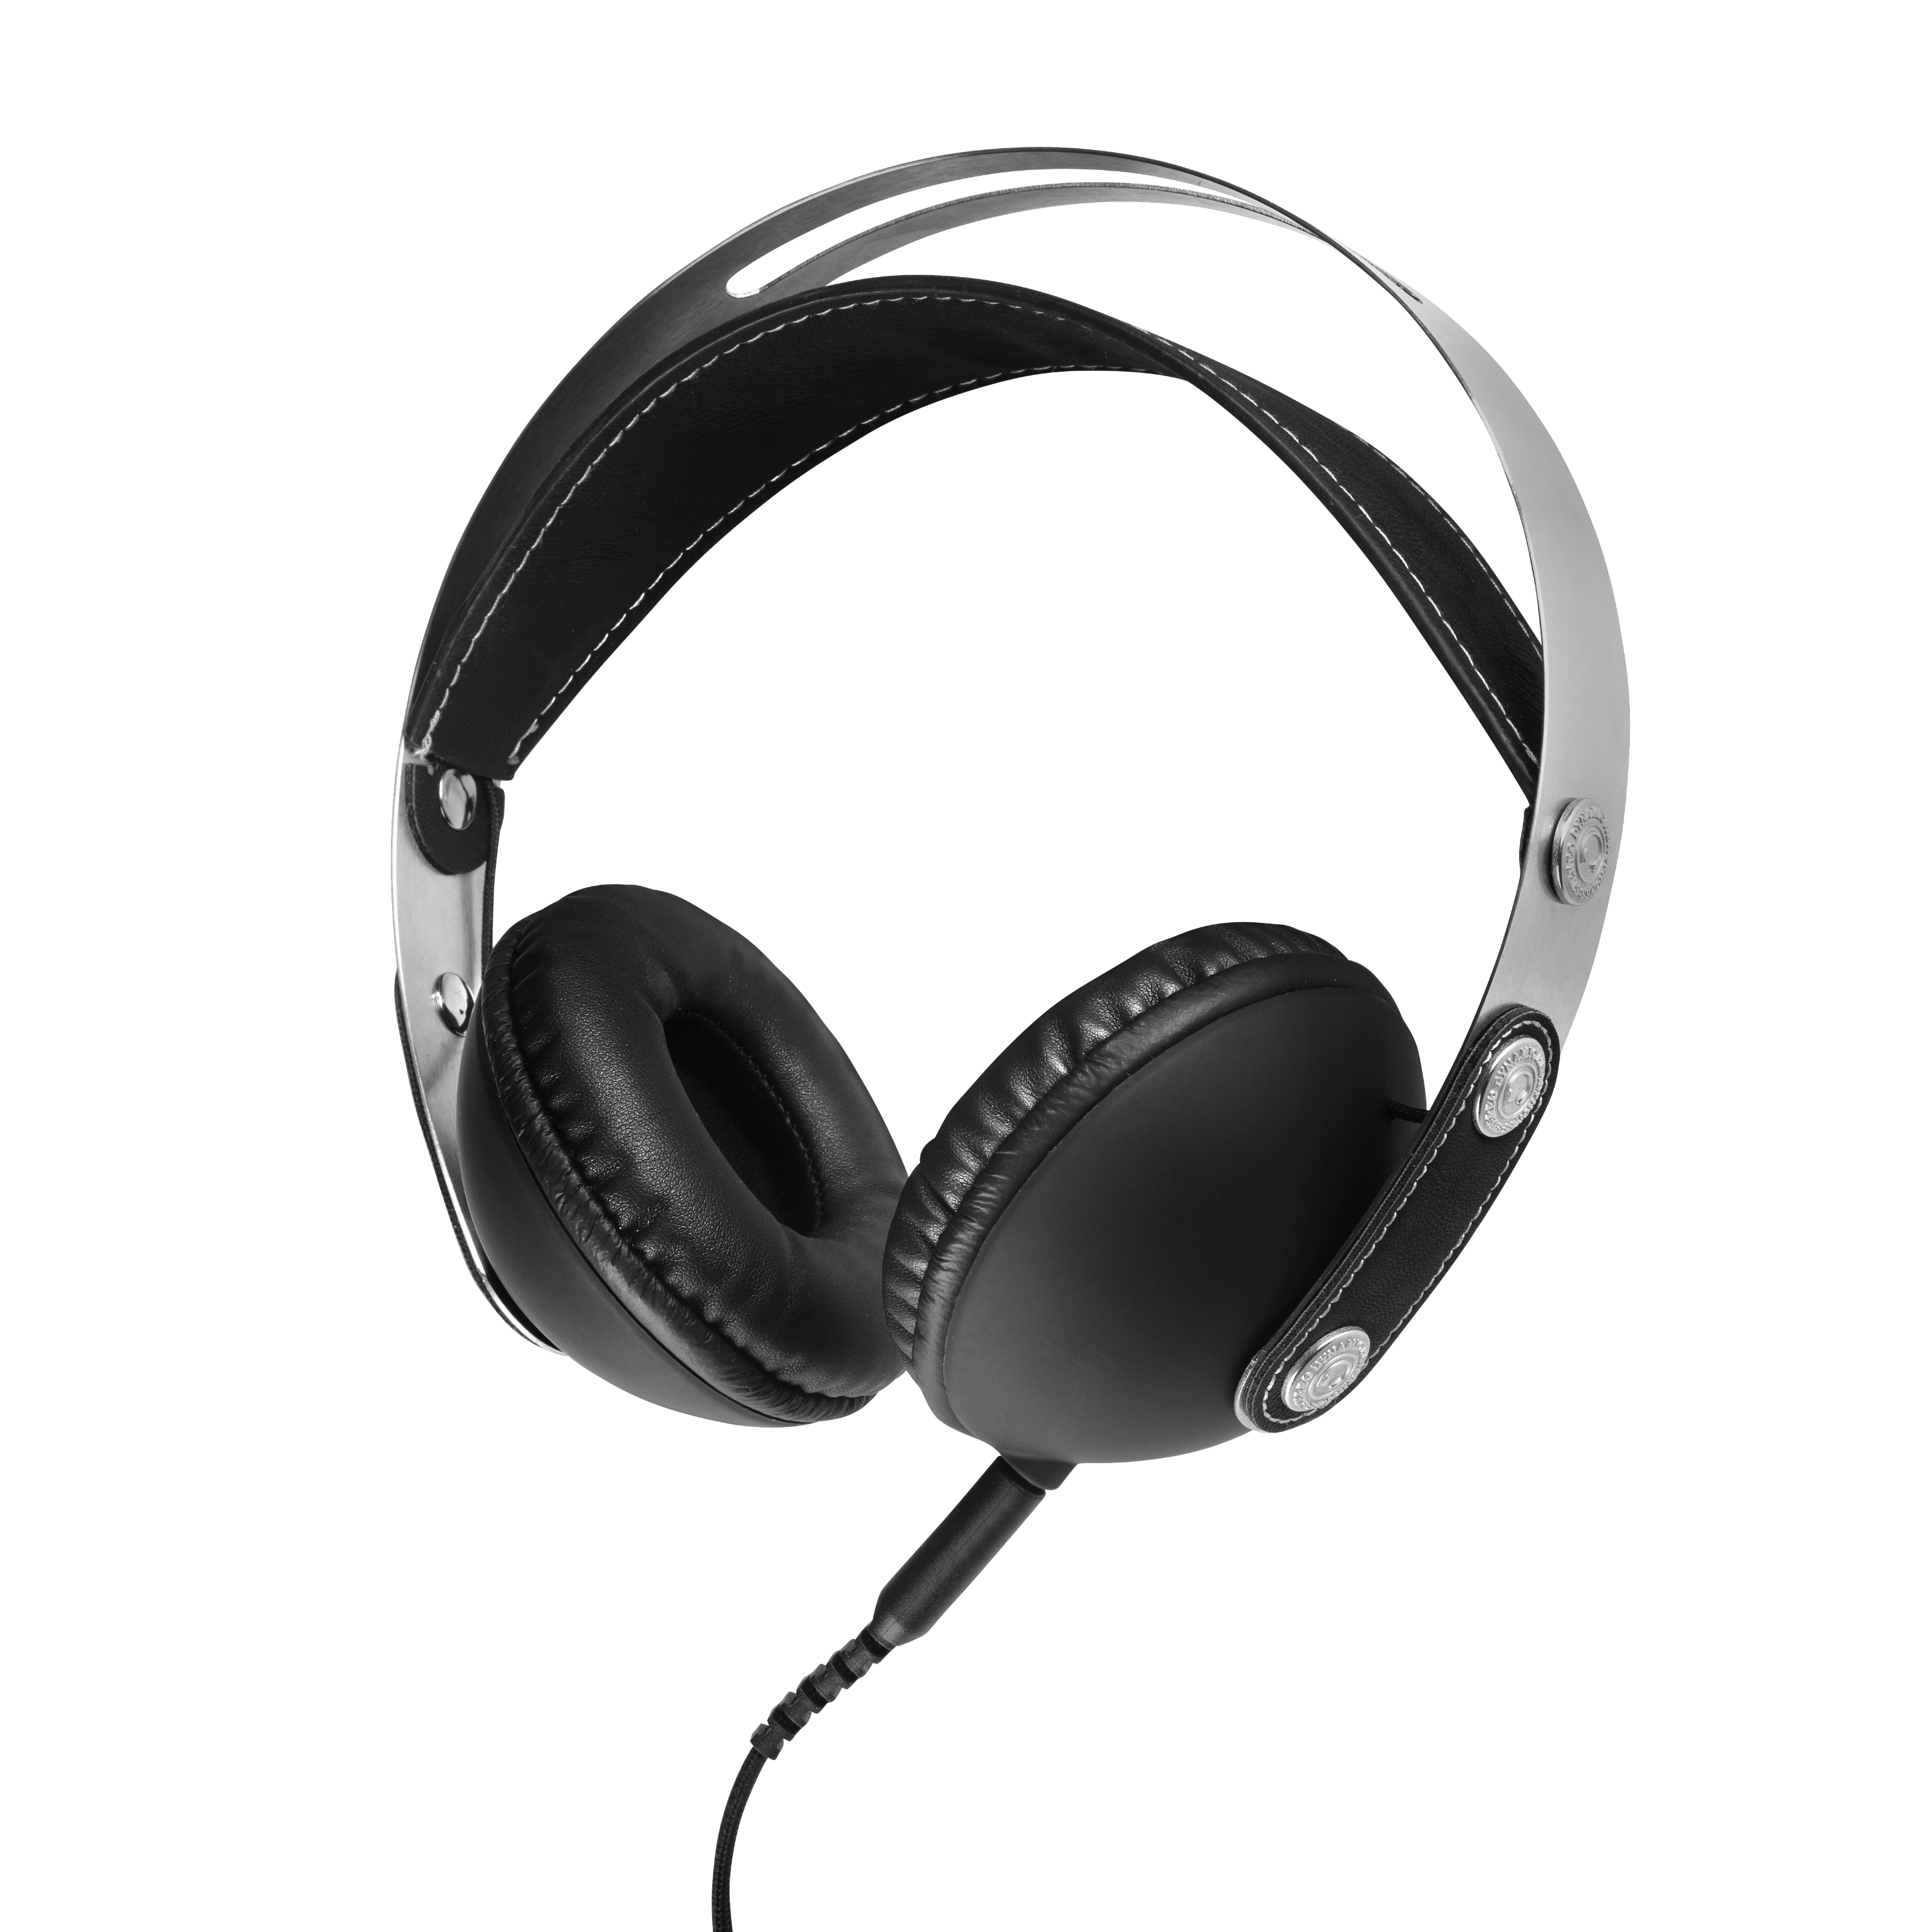 Akai On- Ear Headphones - Black No Colour